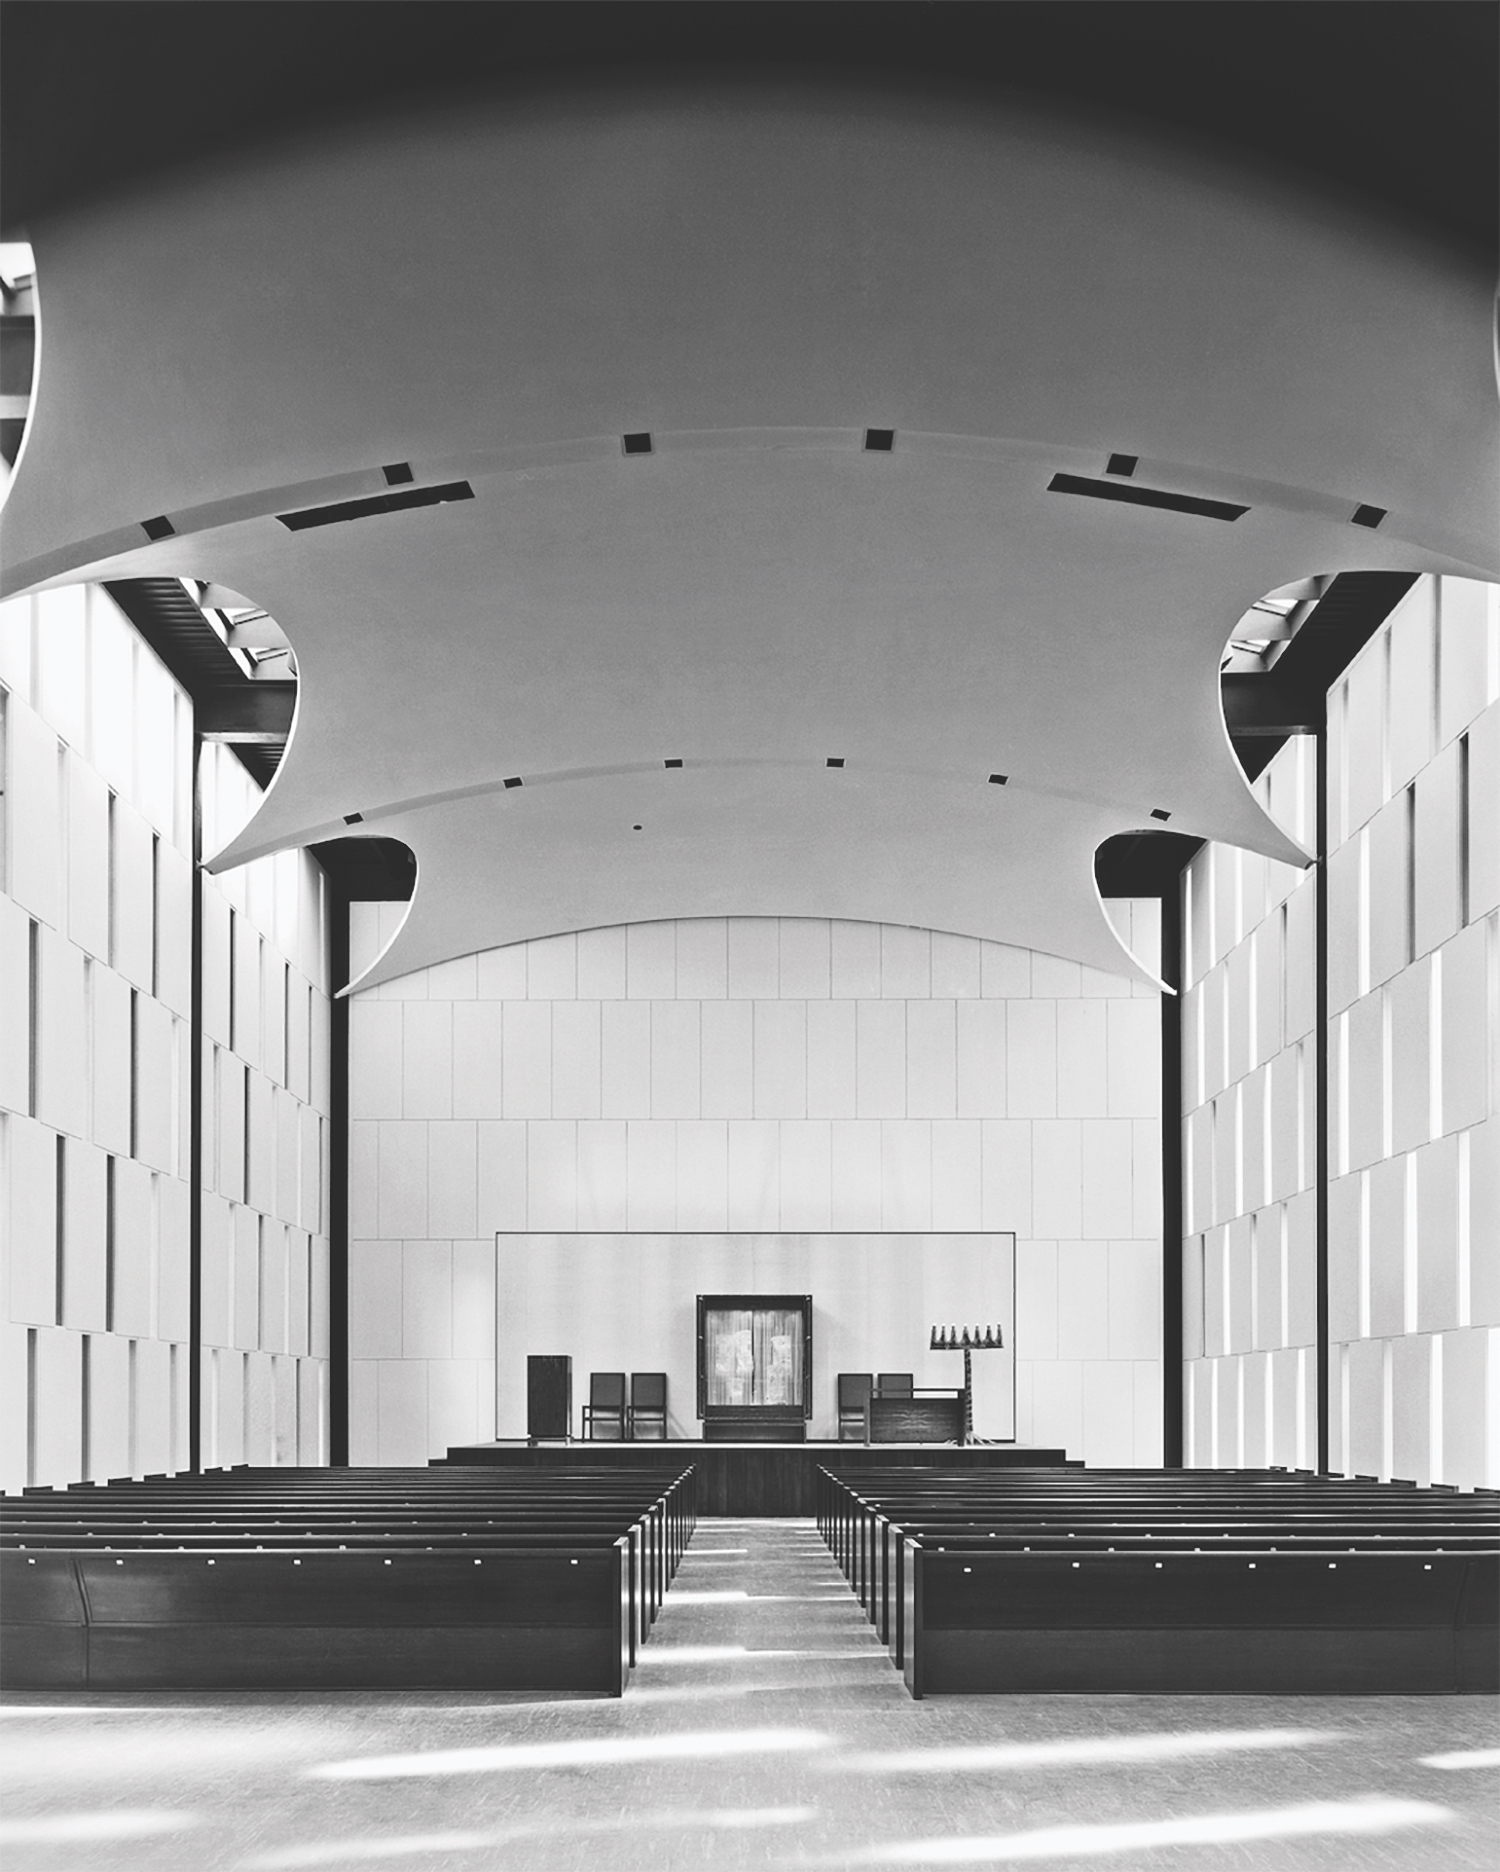 Johnson's atonement Congregations Kneses Tifereth Israel of 1956 (Esto-Ezra Stoller)